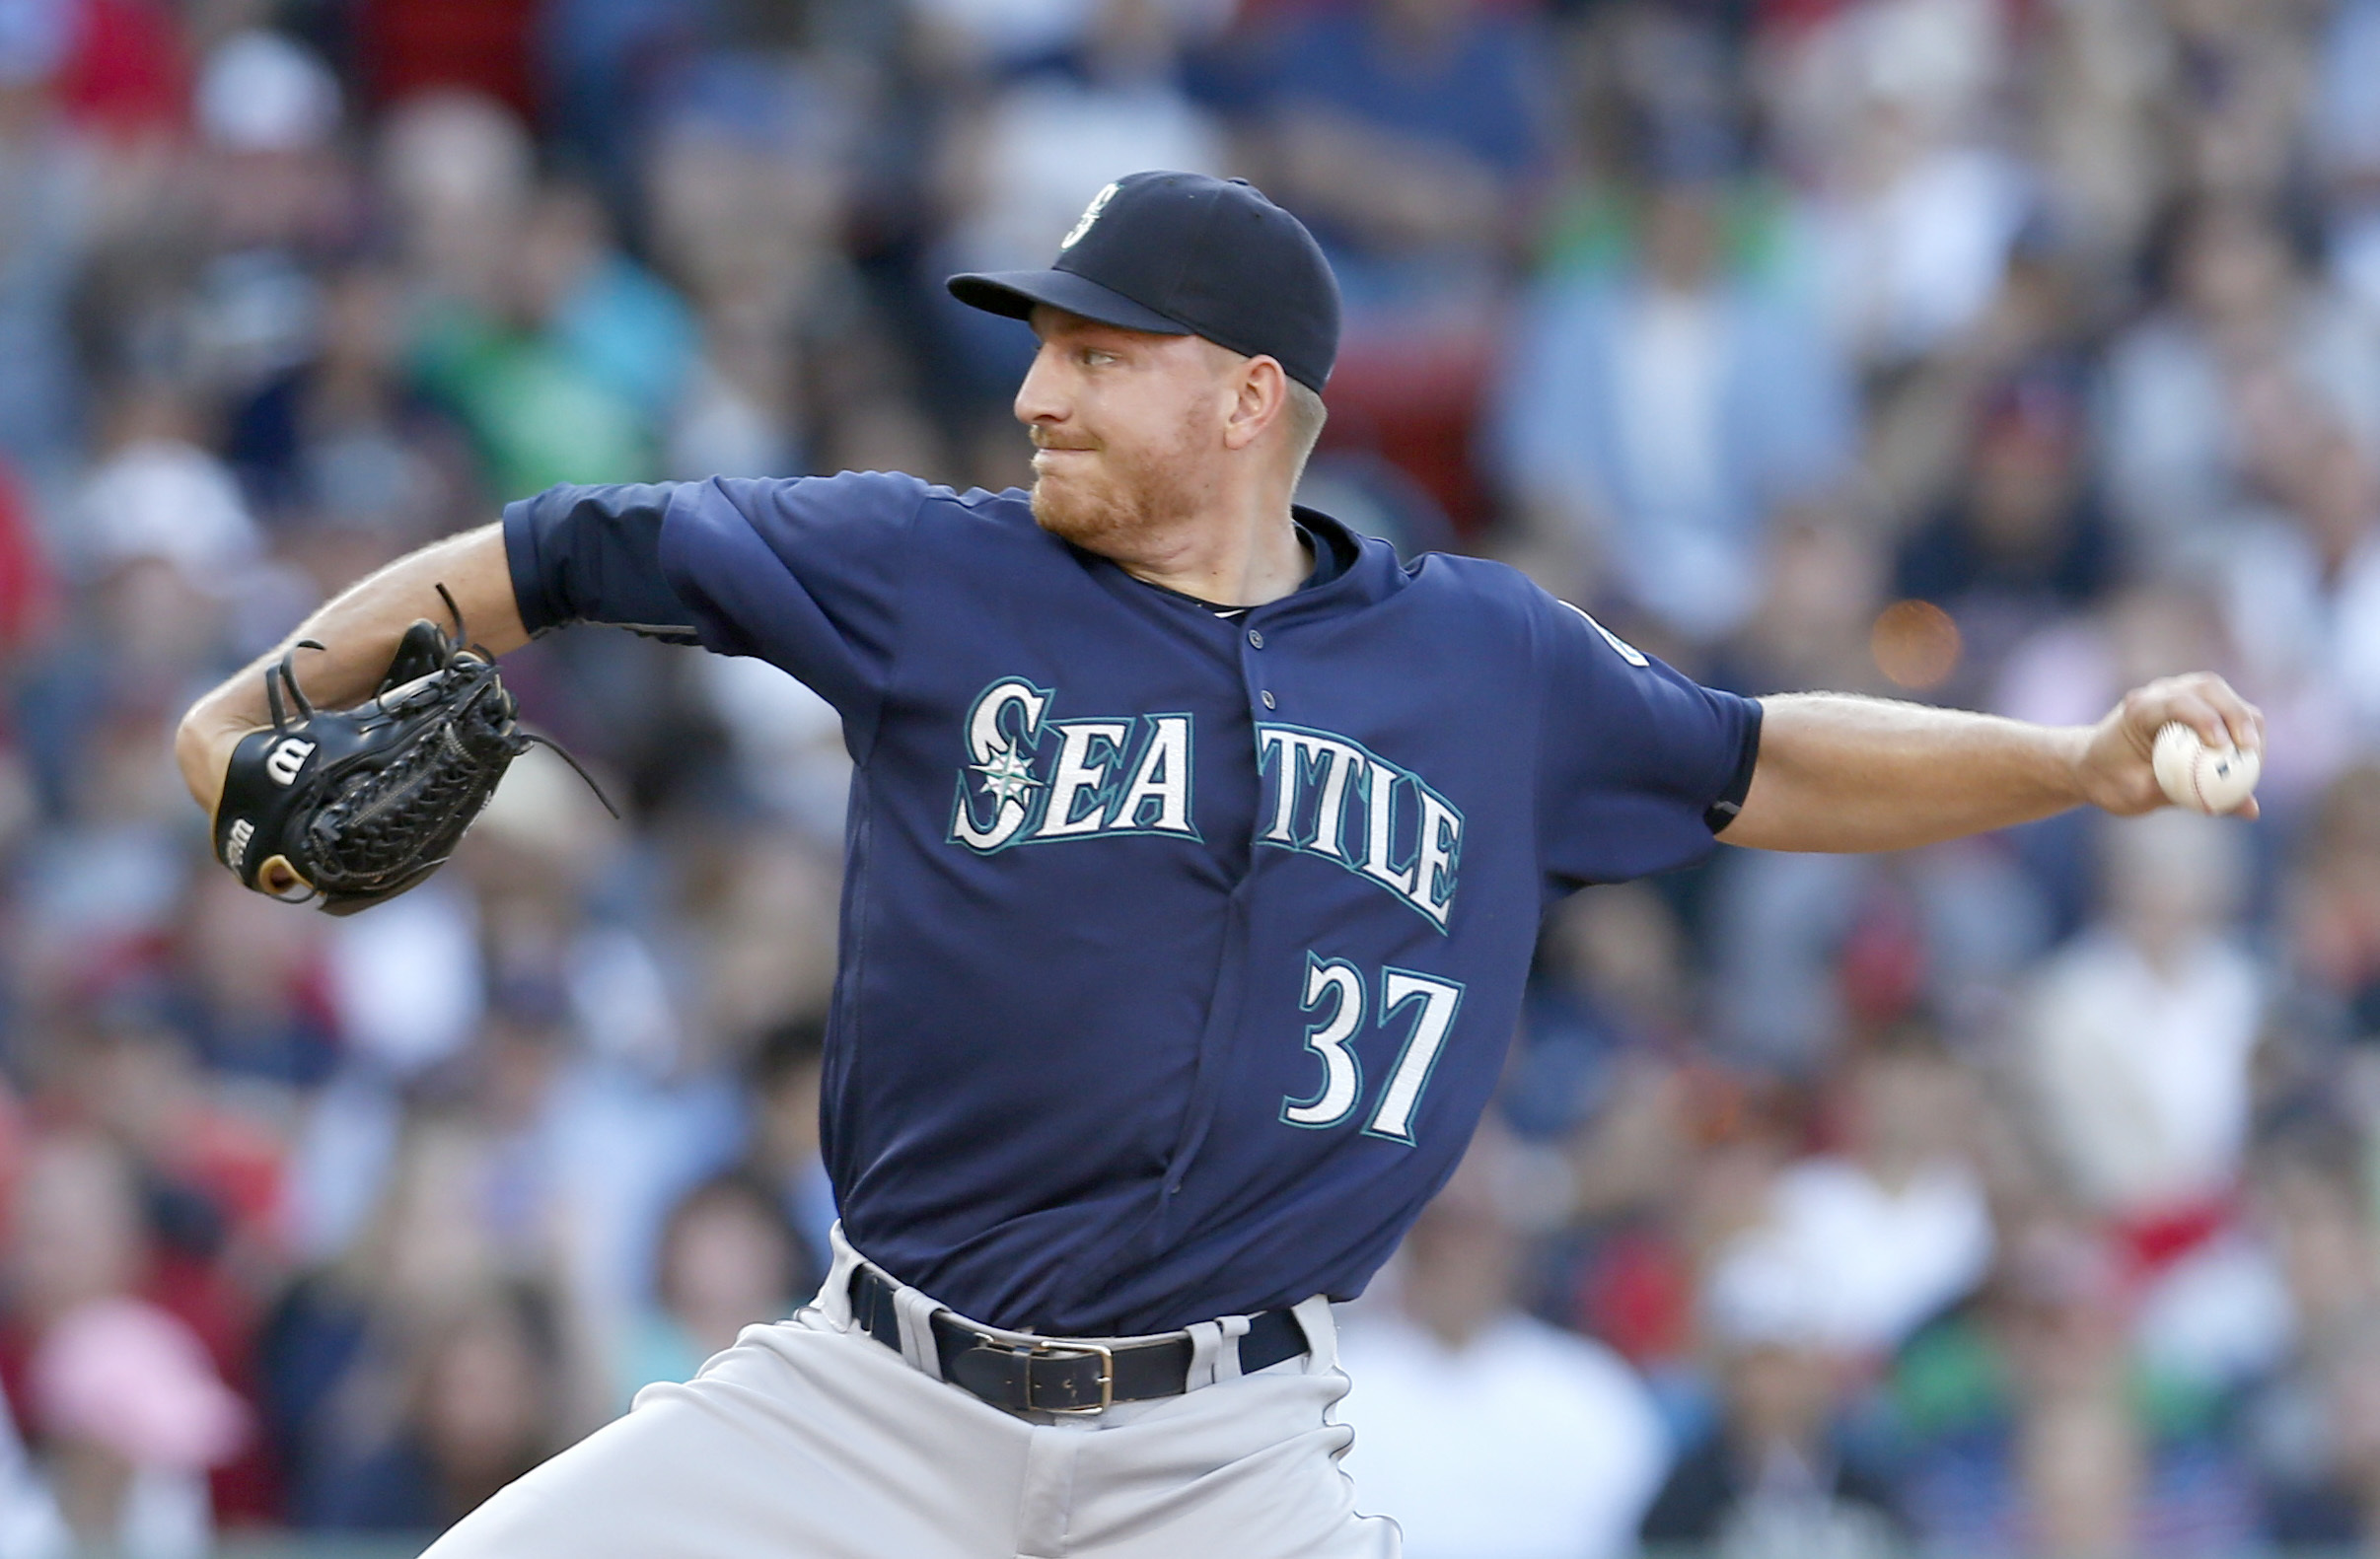 FILE - In this Saturday, June 18, 2016 file photo, Seattle Mariners relief pitcher Mike Montgomery (37) pitches during the sixth inning of a baseball game against the Boston Red Sox at Fenway Park in Boston. The Chicago Cubs added bullpen help by acquirin